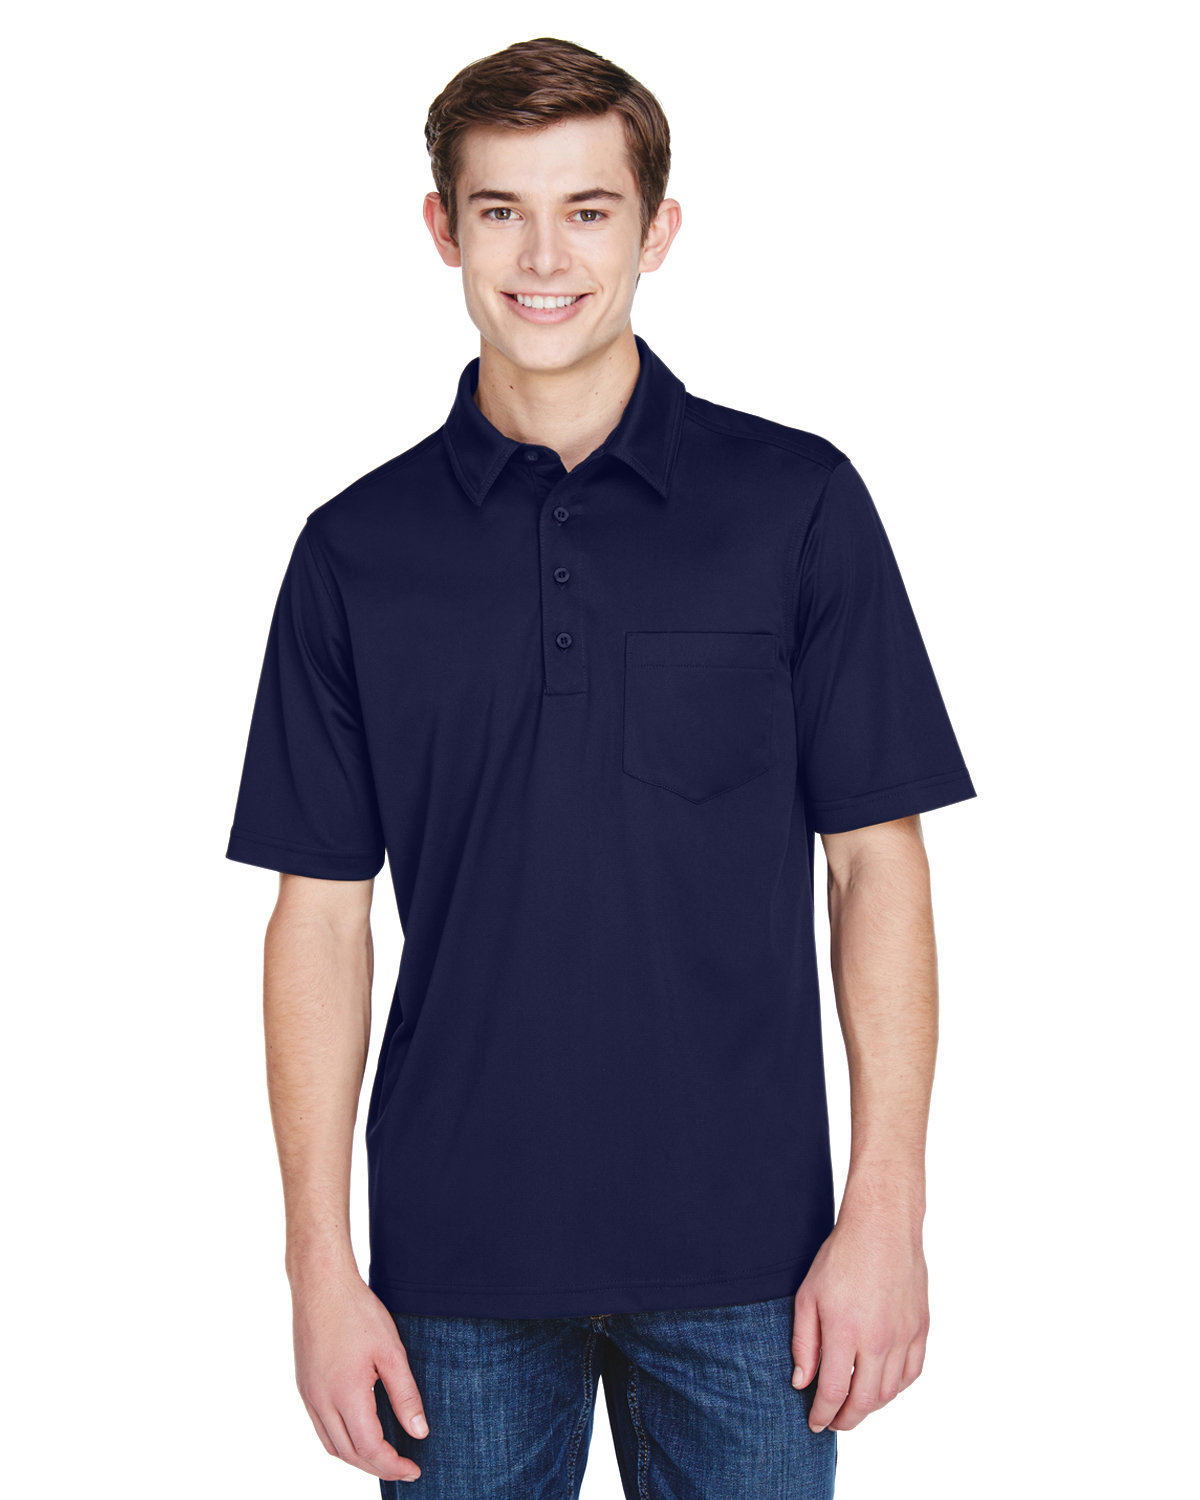 Extreme Men's Eperformance™ Shift SnagProtection Plus Polo CLASSIC NAVY